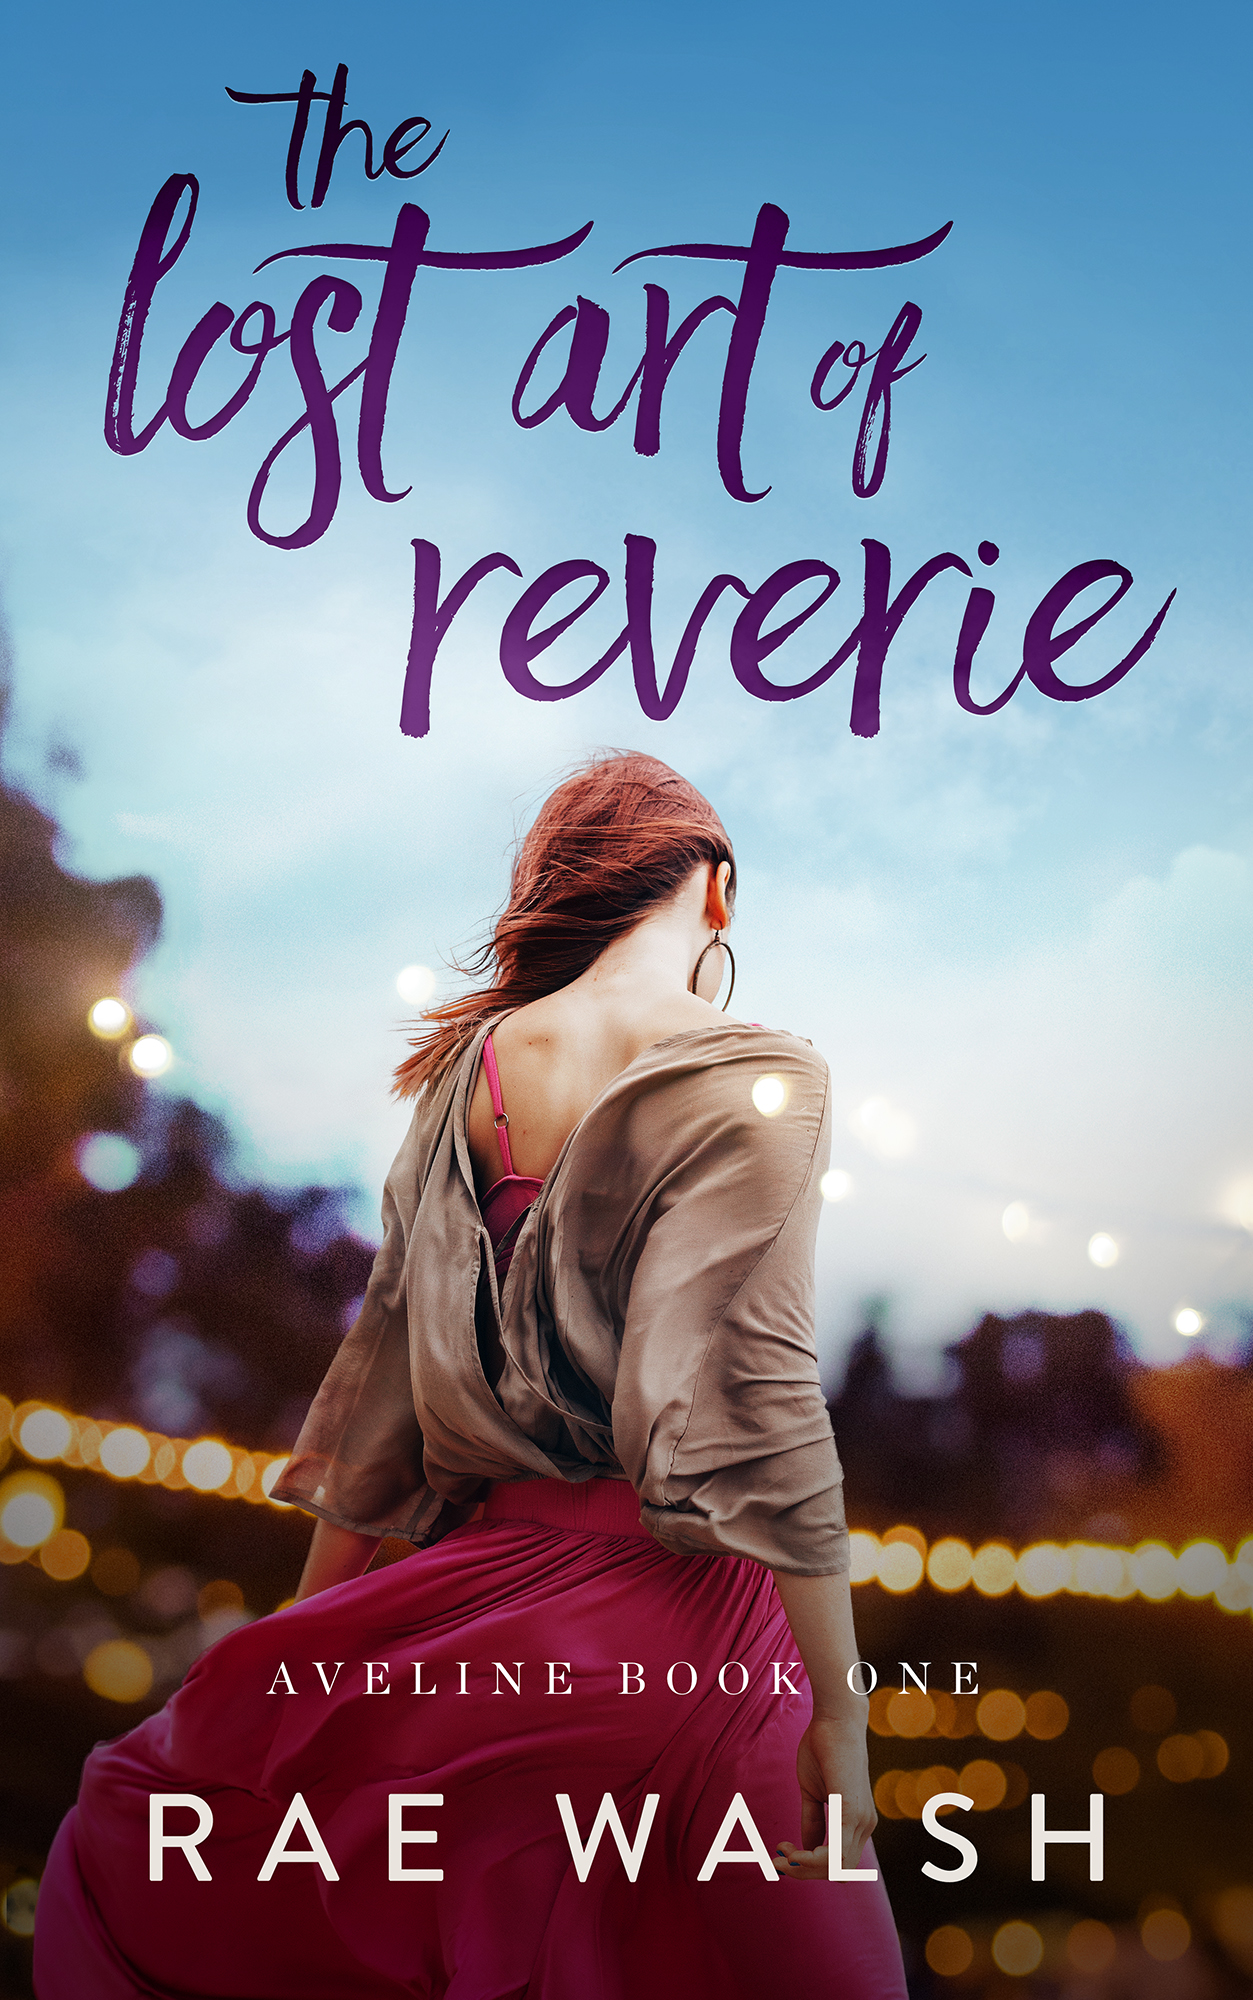 The Lost Art of Reverie - Ebook Small.jpg